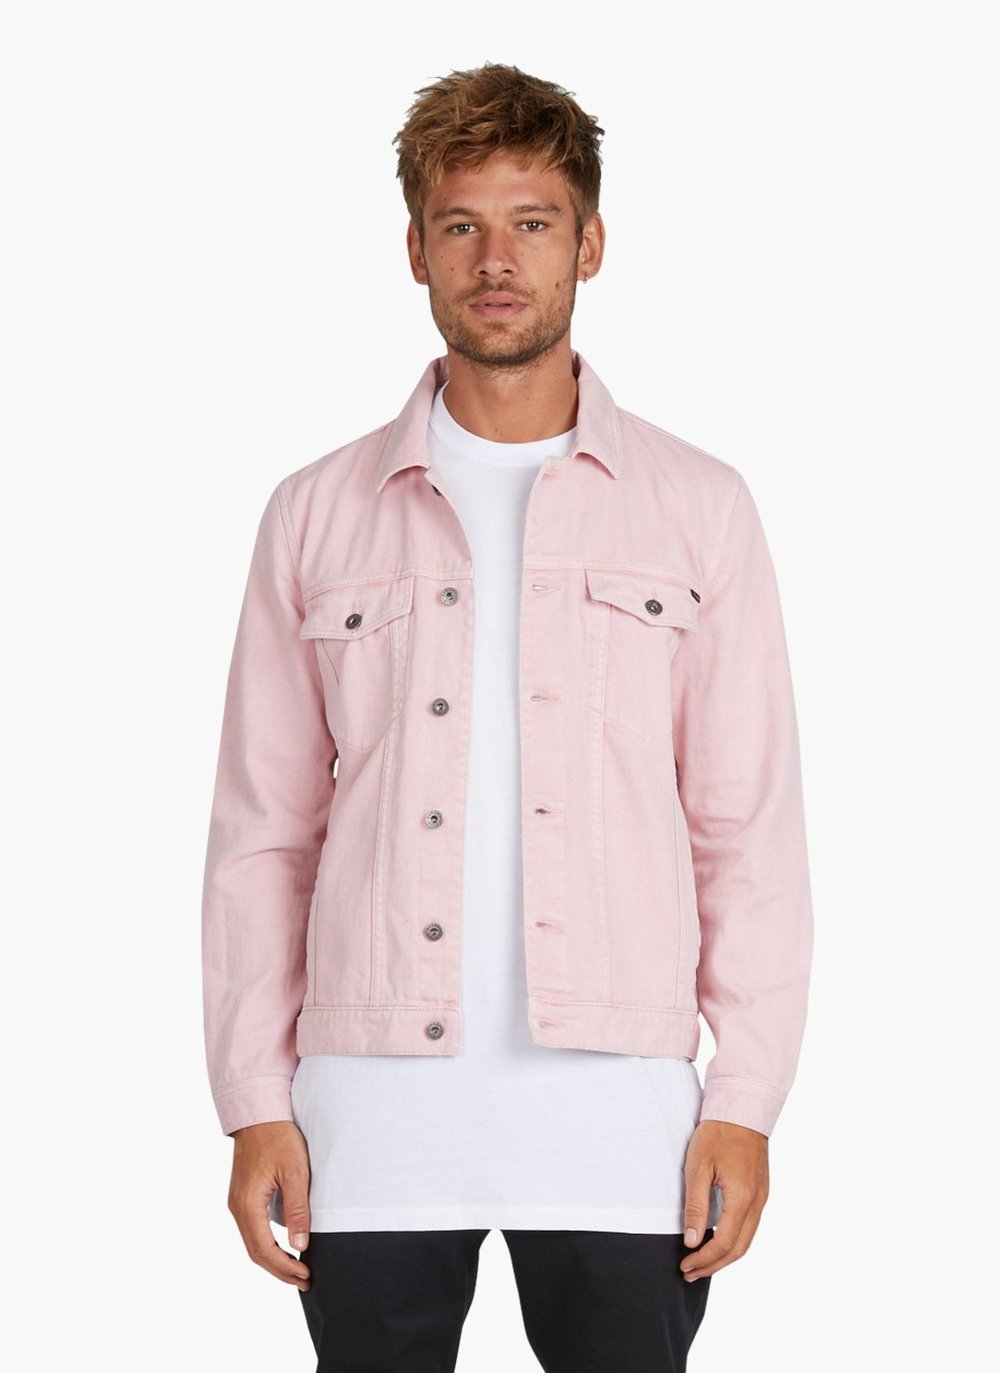 BARNEY-COOLS-B.Rigid-Jacket-Pink-01.jpg